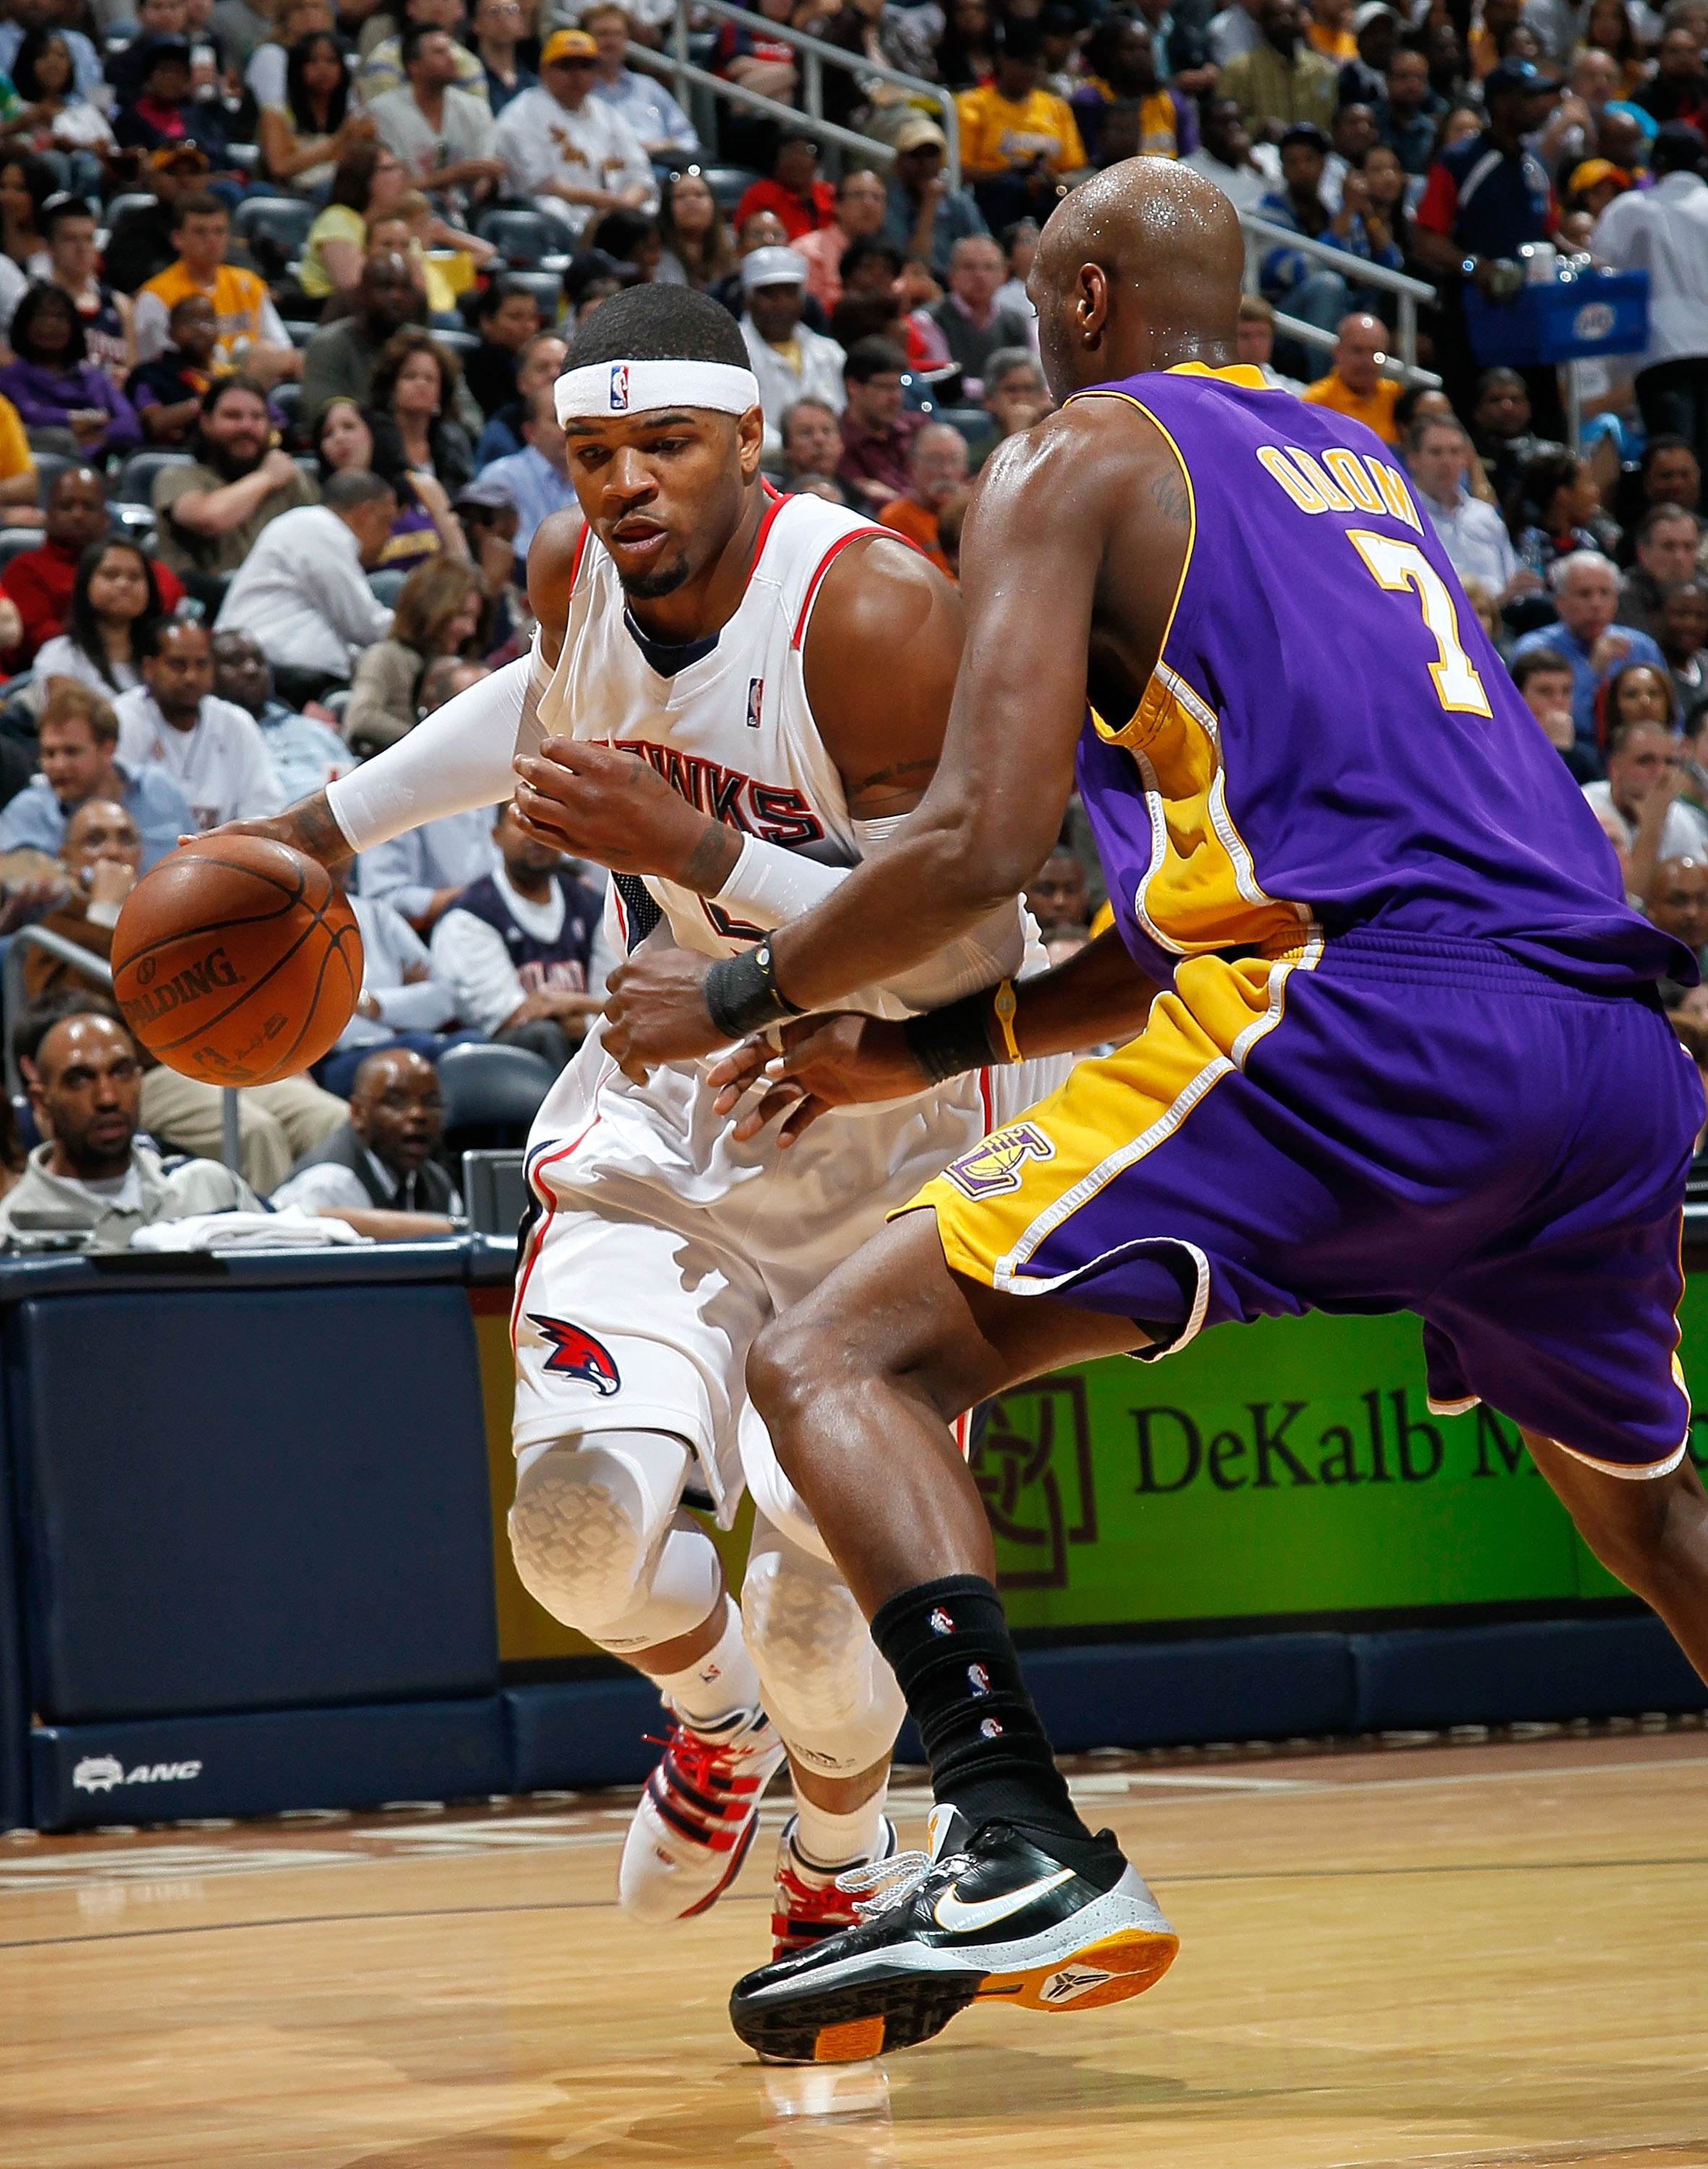 ATLANTA - MARCH 31:  Josh Smith #5 of the Atlanta Hawks against Lamar Odom #7 of the Los Angeles Lakers at Philips Arena on March 31, 2010 in Atlanta, Georgia.  NOTE TO USER: User expressly acknowledges and agrees that, by downloading and/or using this Ph